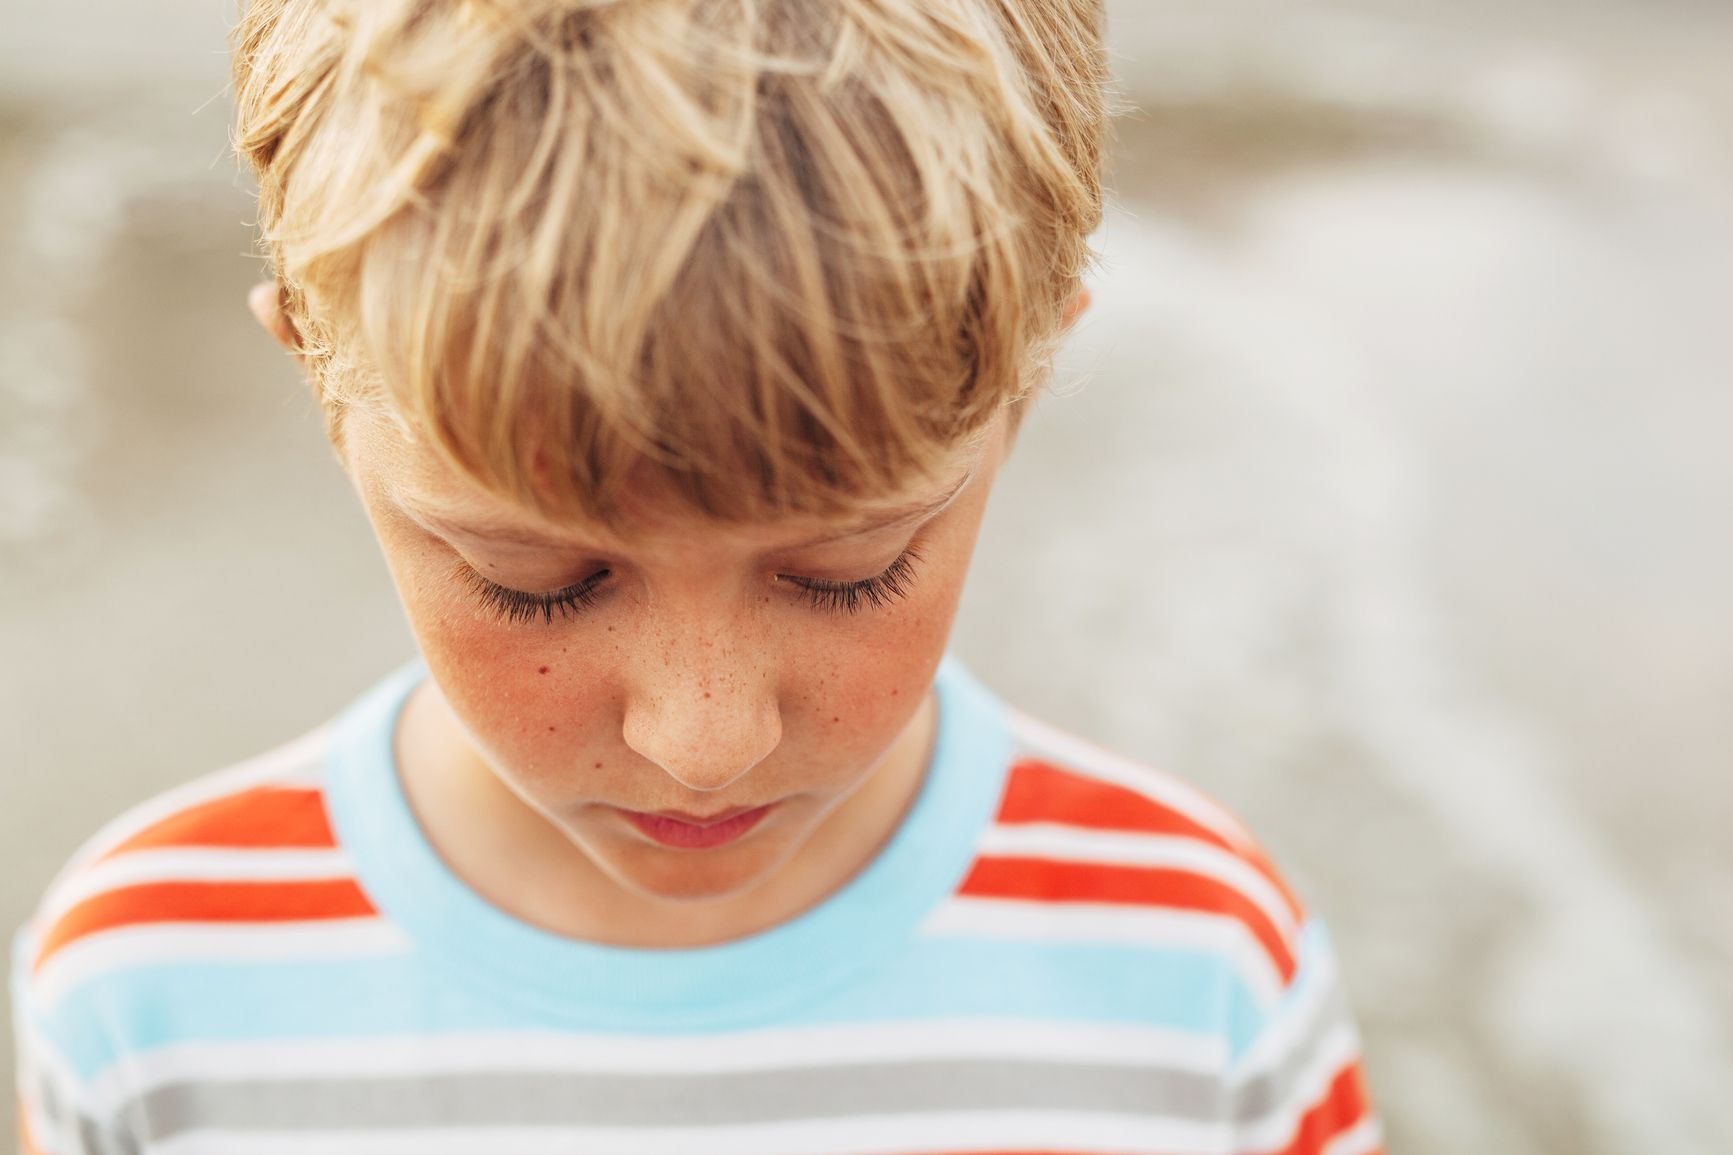 10 Types of Kids Most Likely to Be Bullied